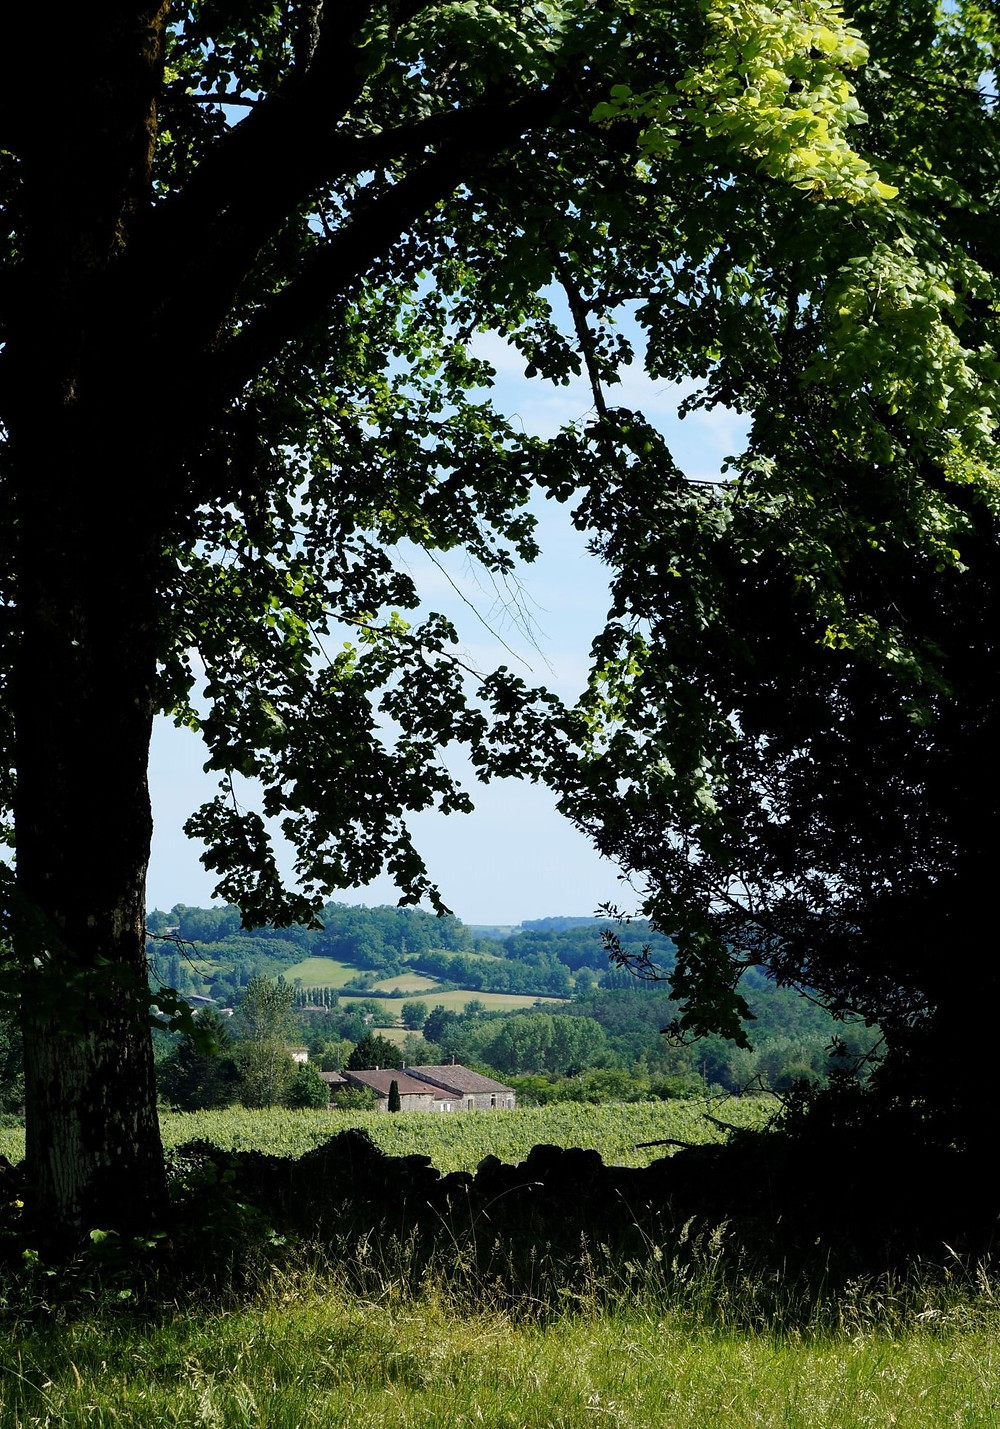 this pastoral landscape is part of the property of a chateau and vineyard in south western France